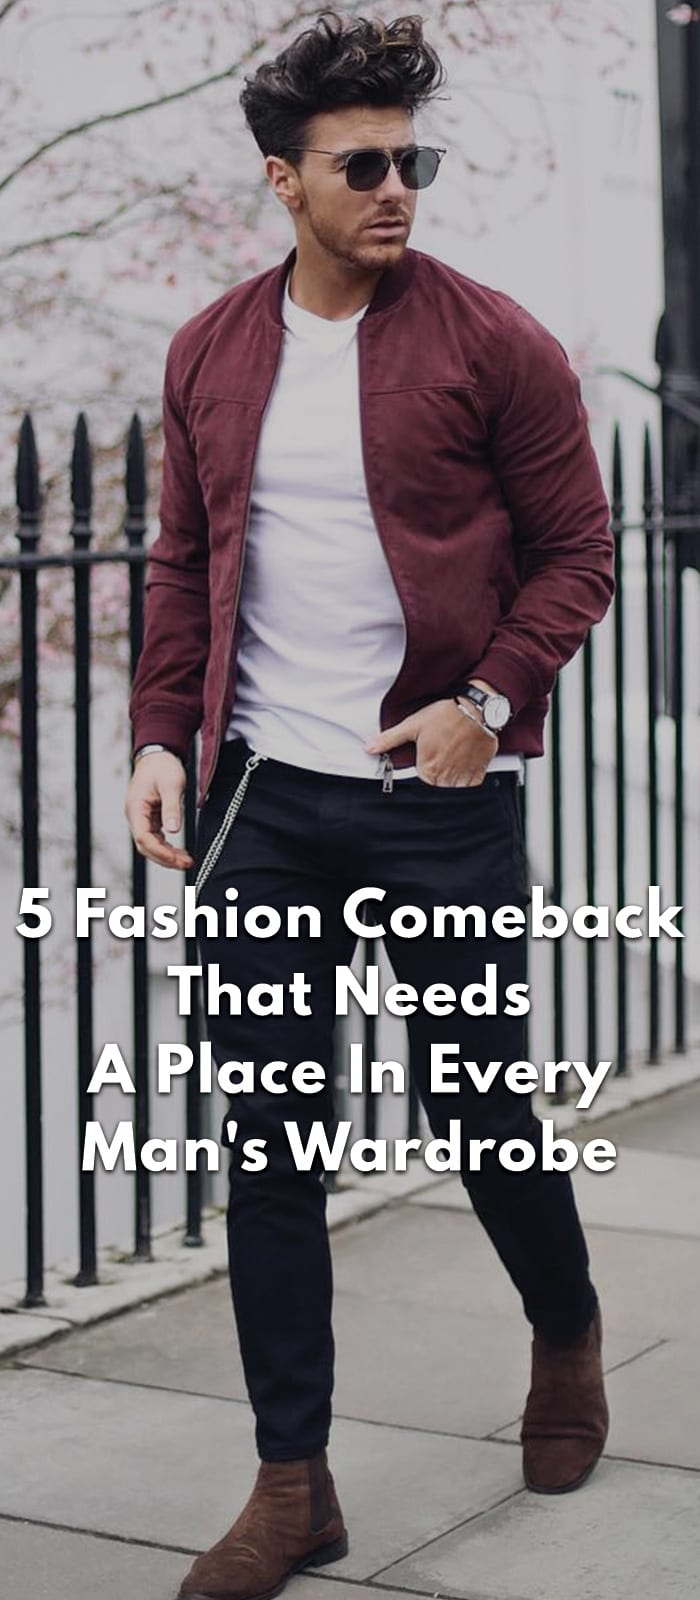 5-Fashion-Comeback-That-Needs-A-Place-In-Every-Man's-Wardrobe